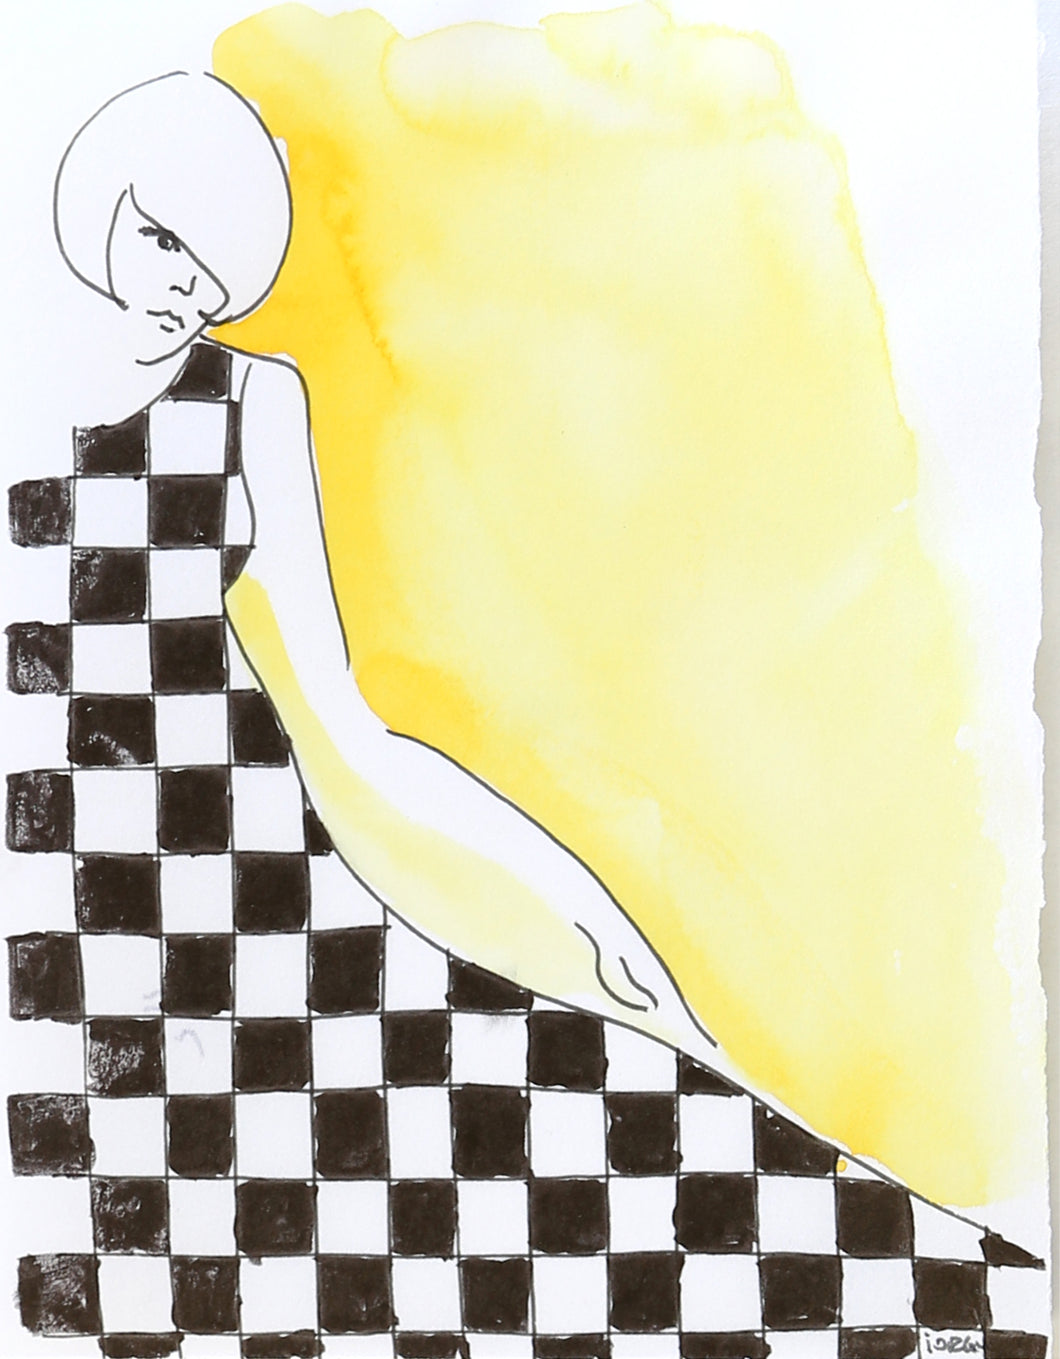 Retro artwork by Alexandra Iorgu of a girl wearing a checkers dress.